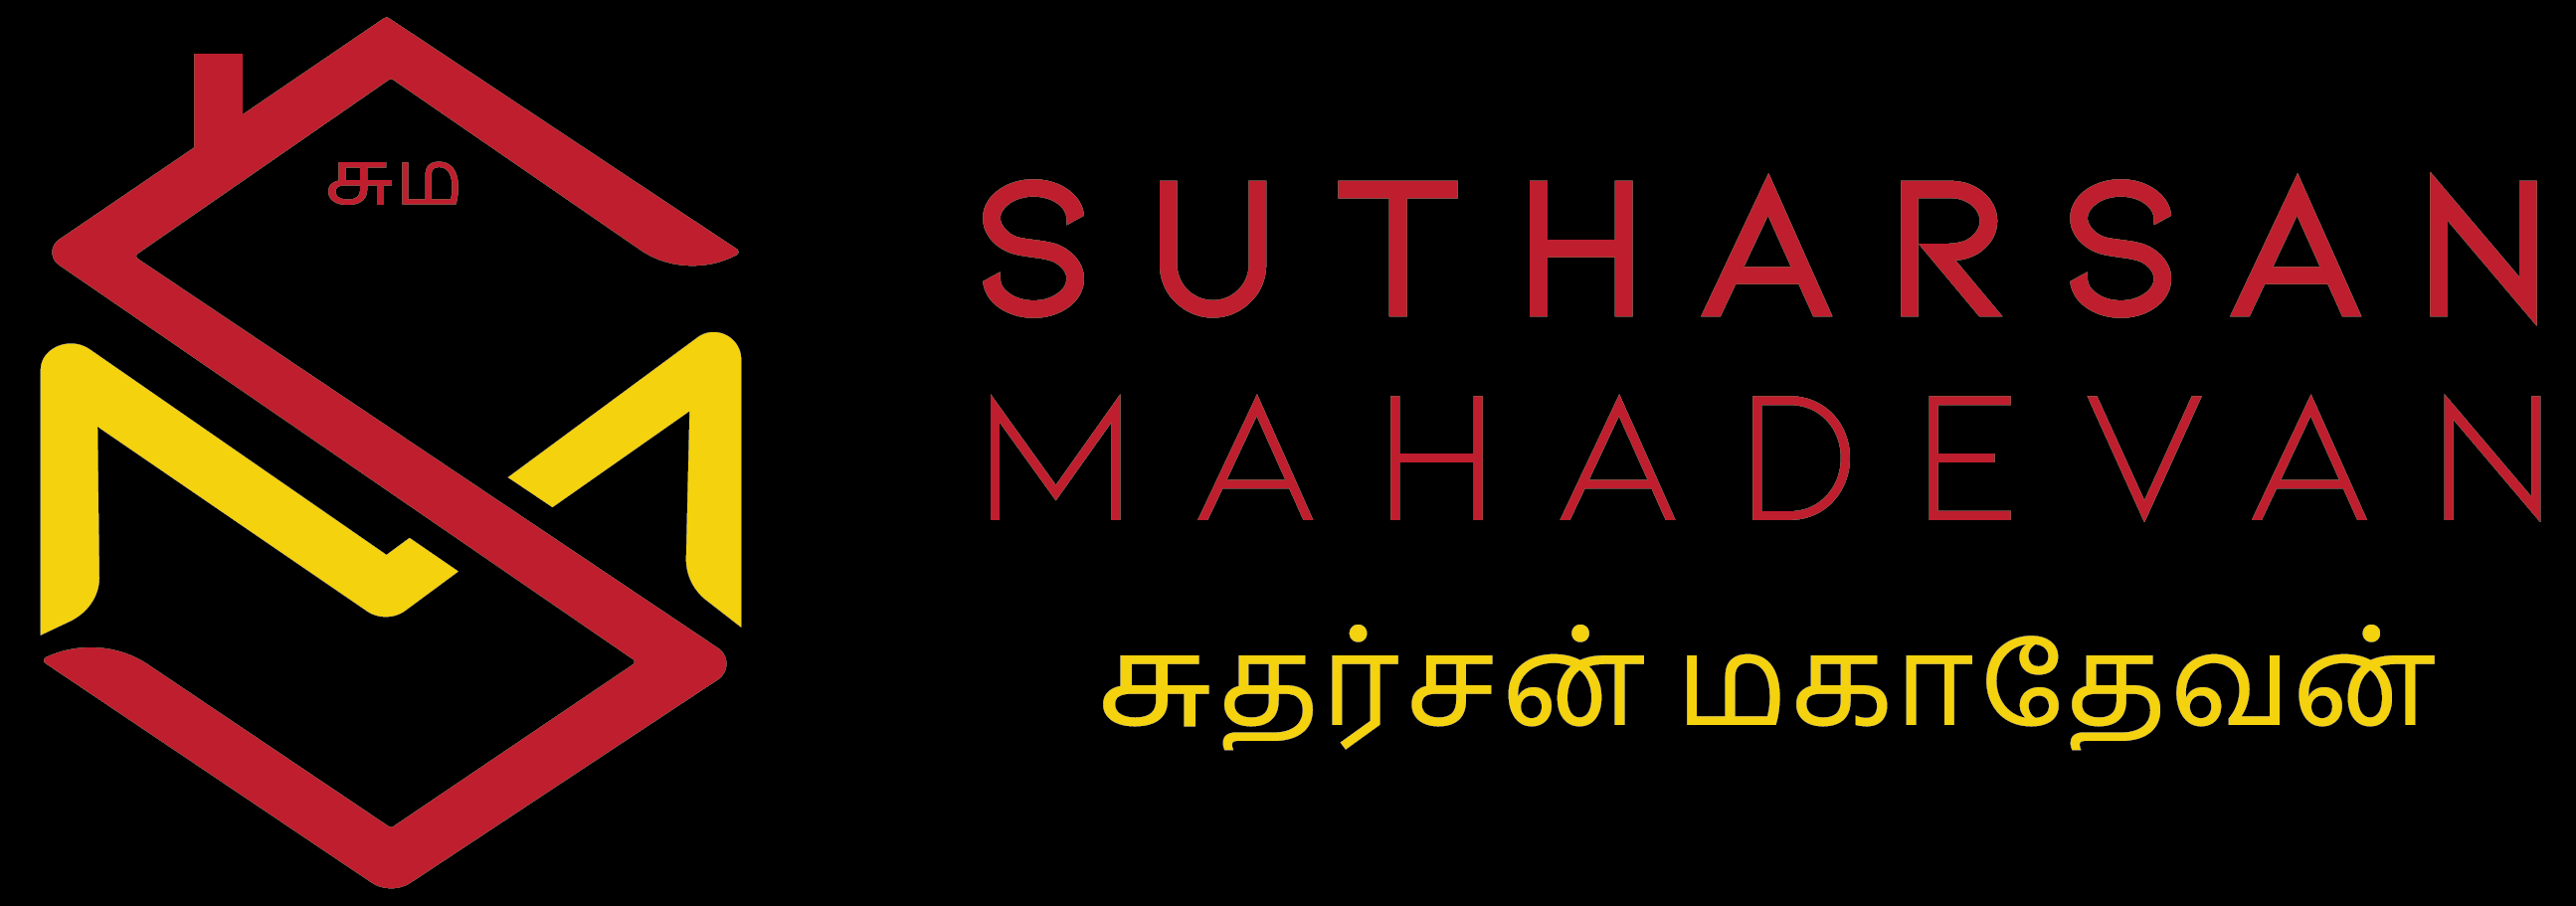 Homes For Sale | Sutharsan Mahadevan Real Estate